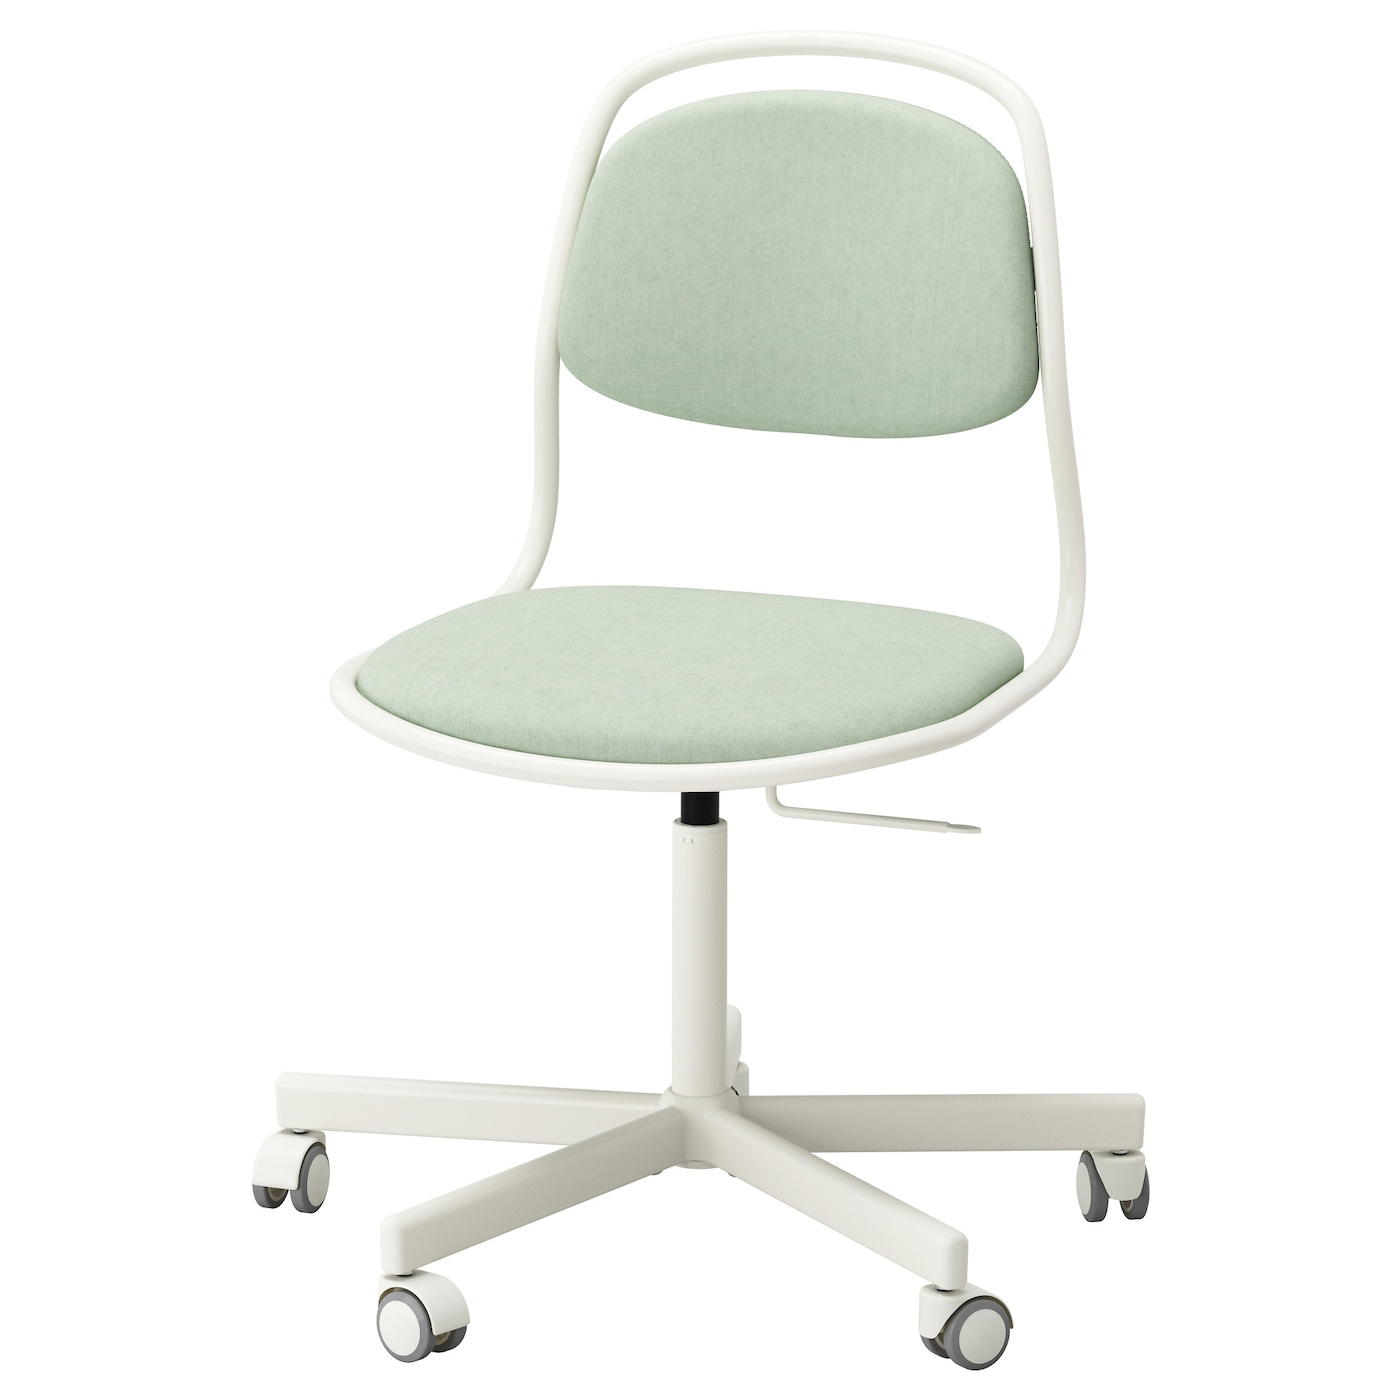 office furniture ikea. IKEA ÖRFJÄLL/SPORREN Swivel Chair You Sit Comfortably Since The Is Adjustable In Height Office Furniture Ikea